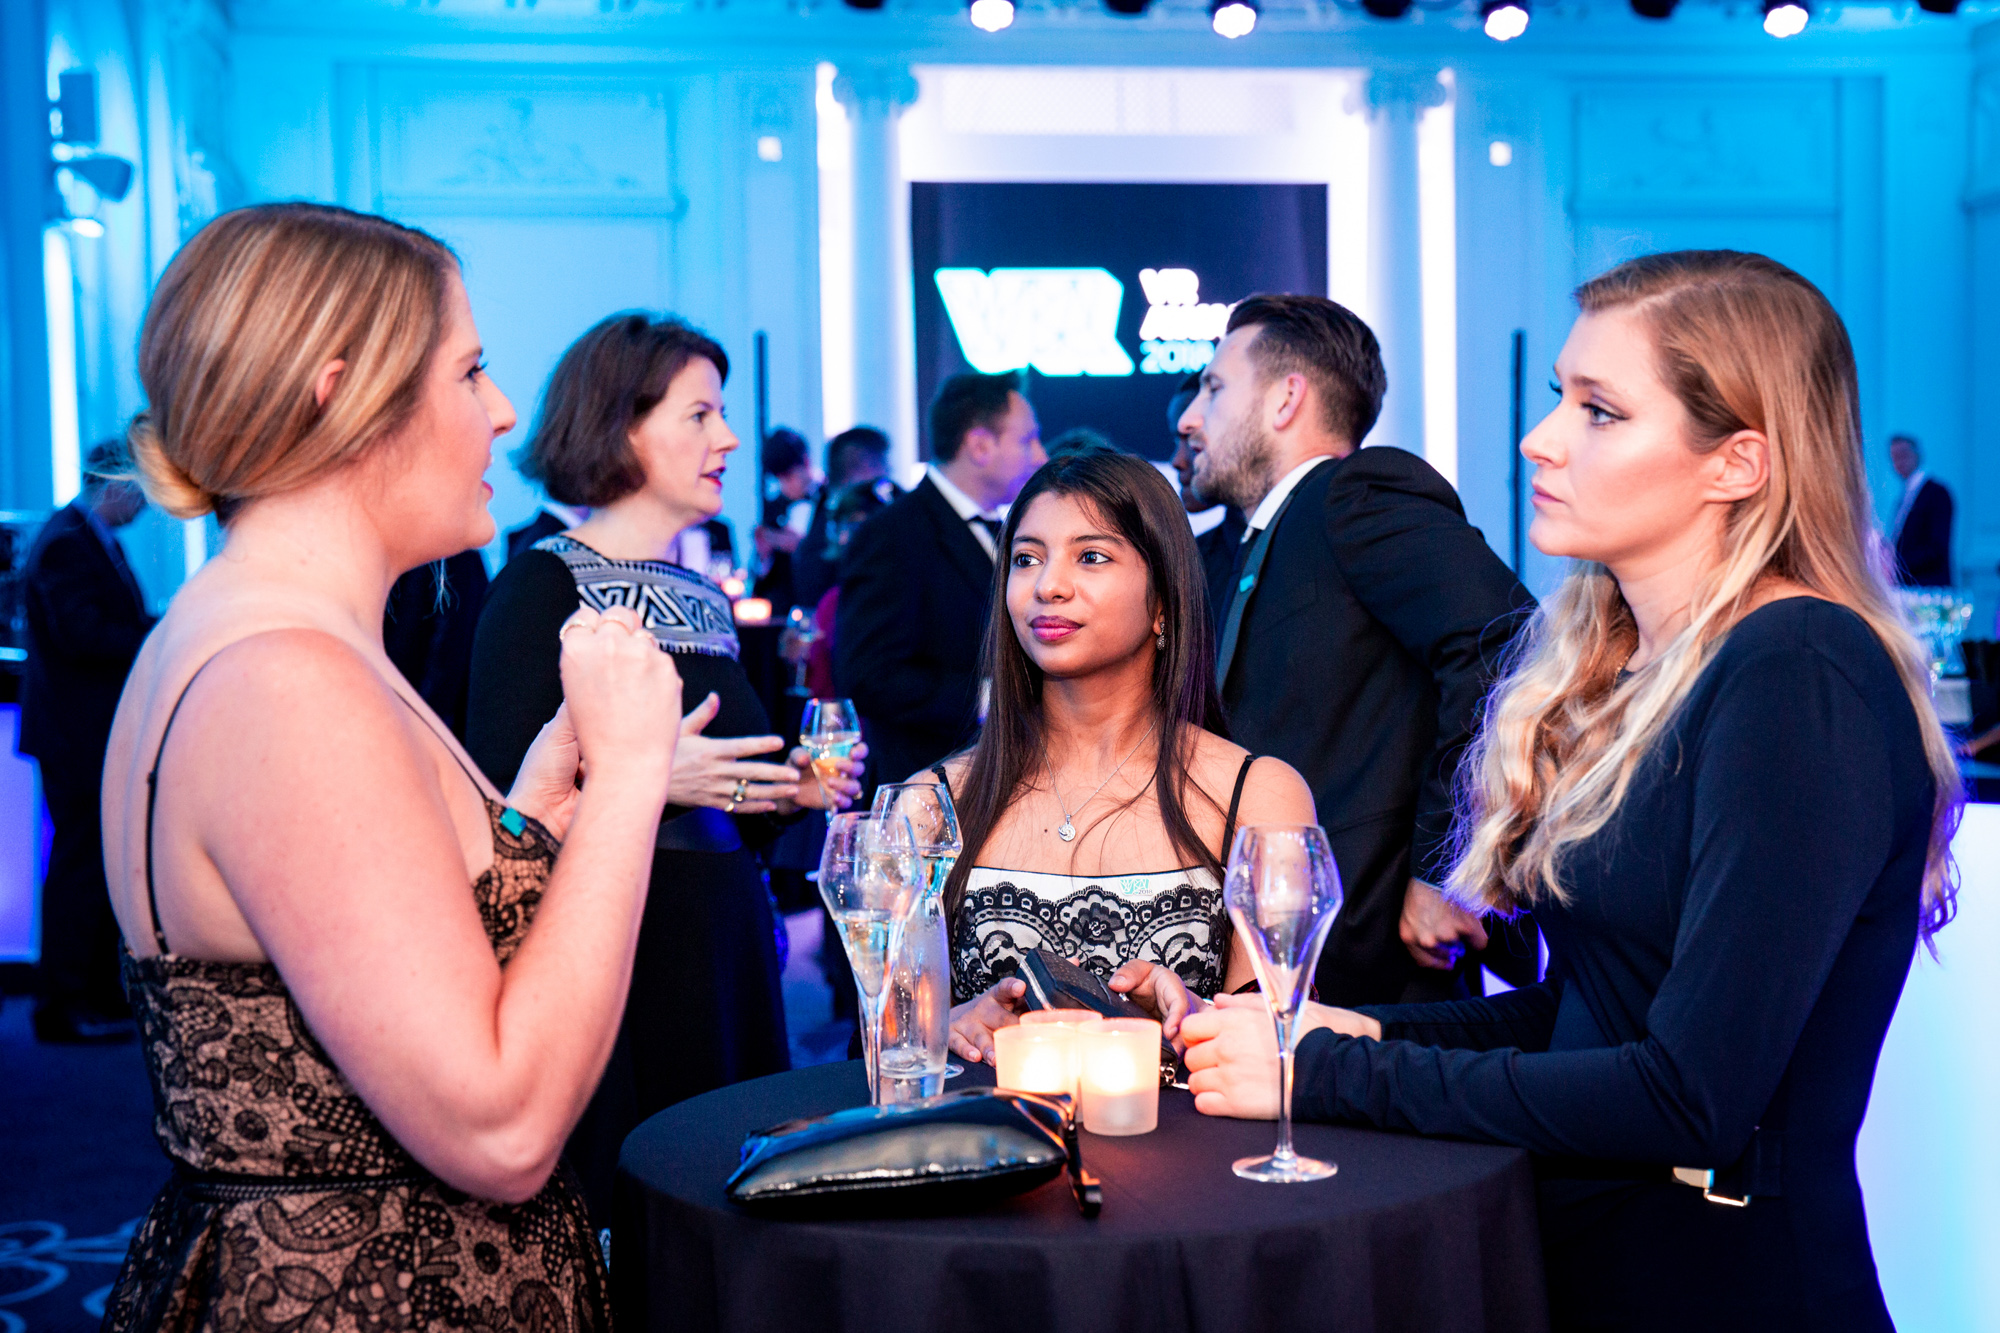 Raccoon_London_VR_Awards_2018_Event_Photography-10.jpg